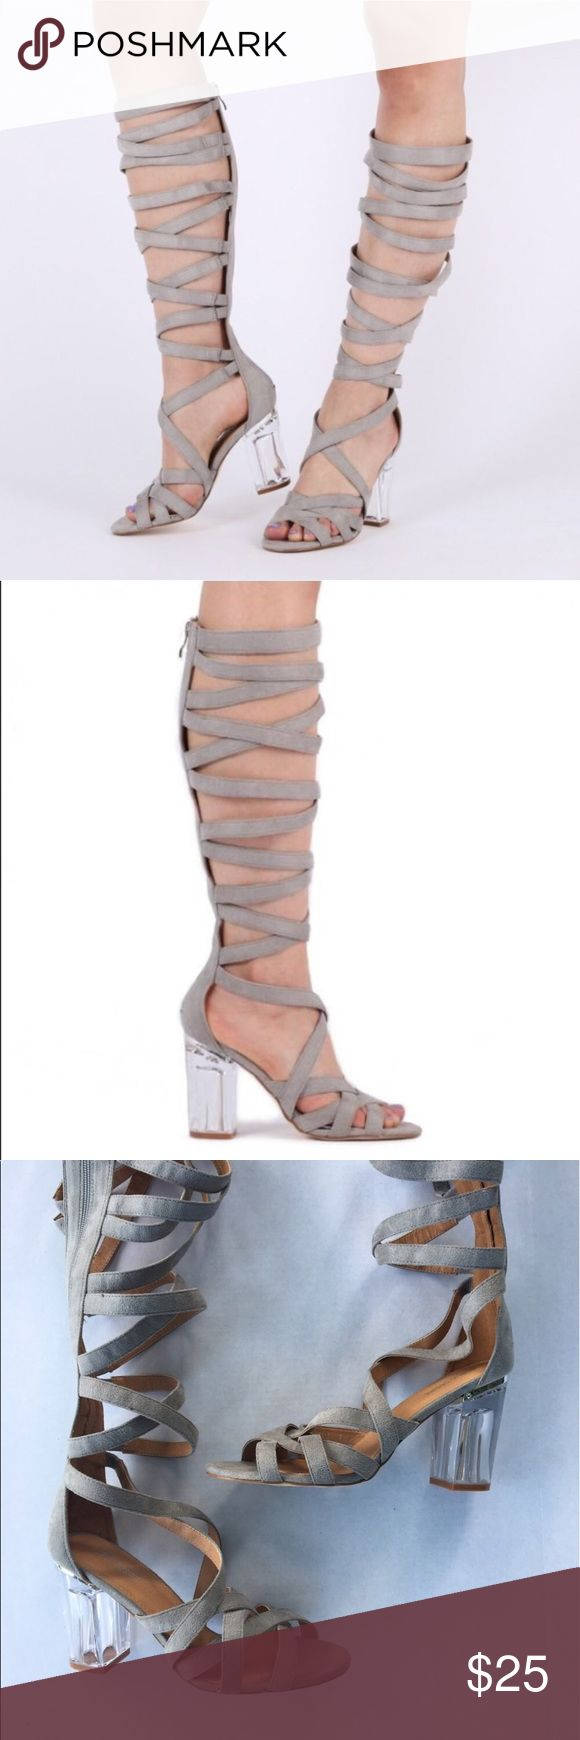 "Public Desire Carina Perspex Lace Up Heels. Public Desire Carina Perspex Lace Up Heels. Never worn perfect condition gladiator sandals with clear Perspex heels. The cross over thick strap design reaches all the way up to the knee so these are sure to make a dramatic entrance, elasticated at the end of the strap for comfort. A zip all the way up the back means these are easy to slip on. Heel Height: 3.6"". Calf Width: 10.4"". Shoe Height: 19"". Fabric Composition: Synthetic, Manmade Faux Suede…"